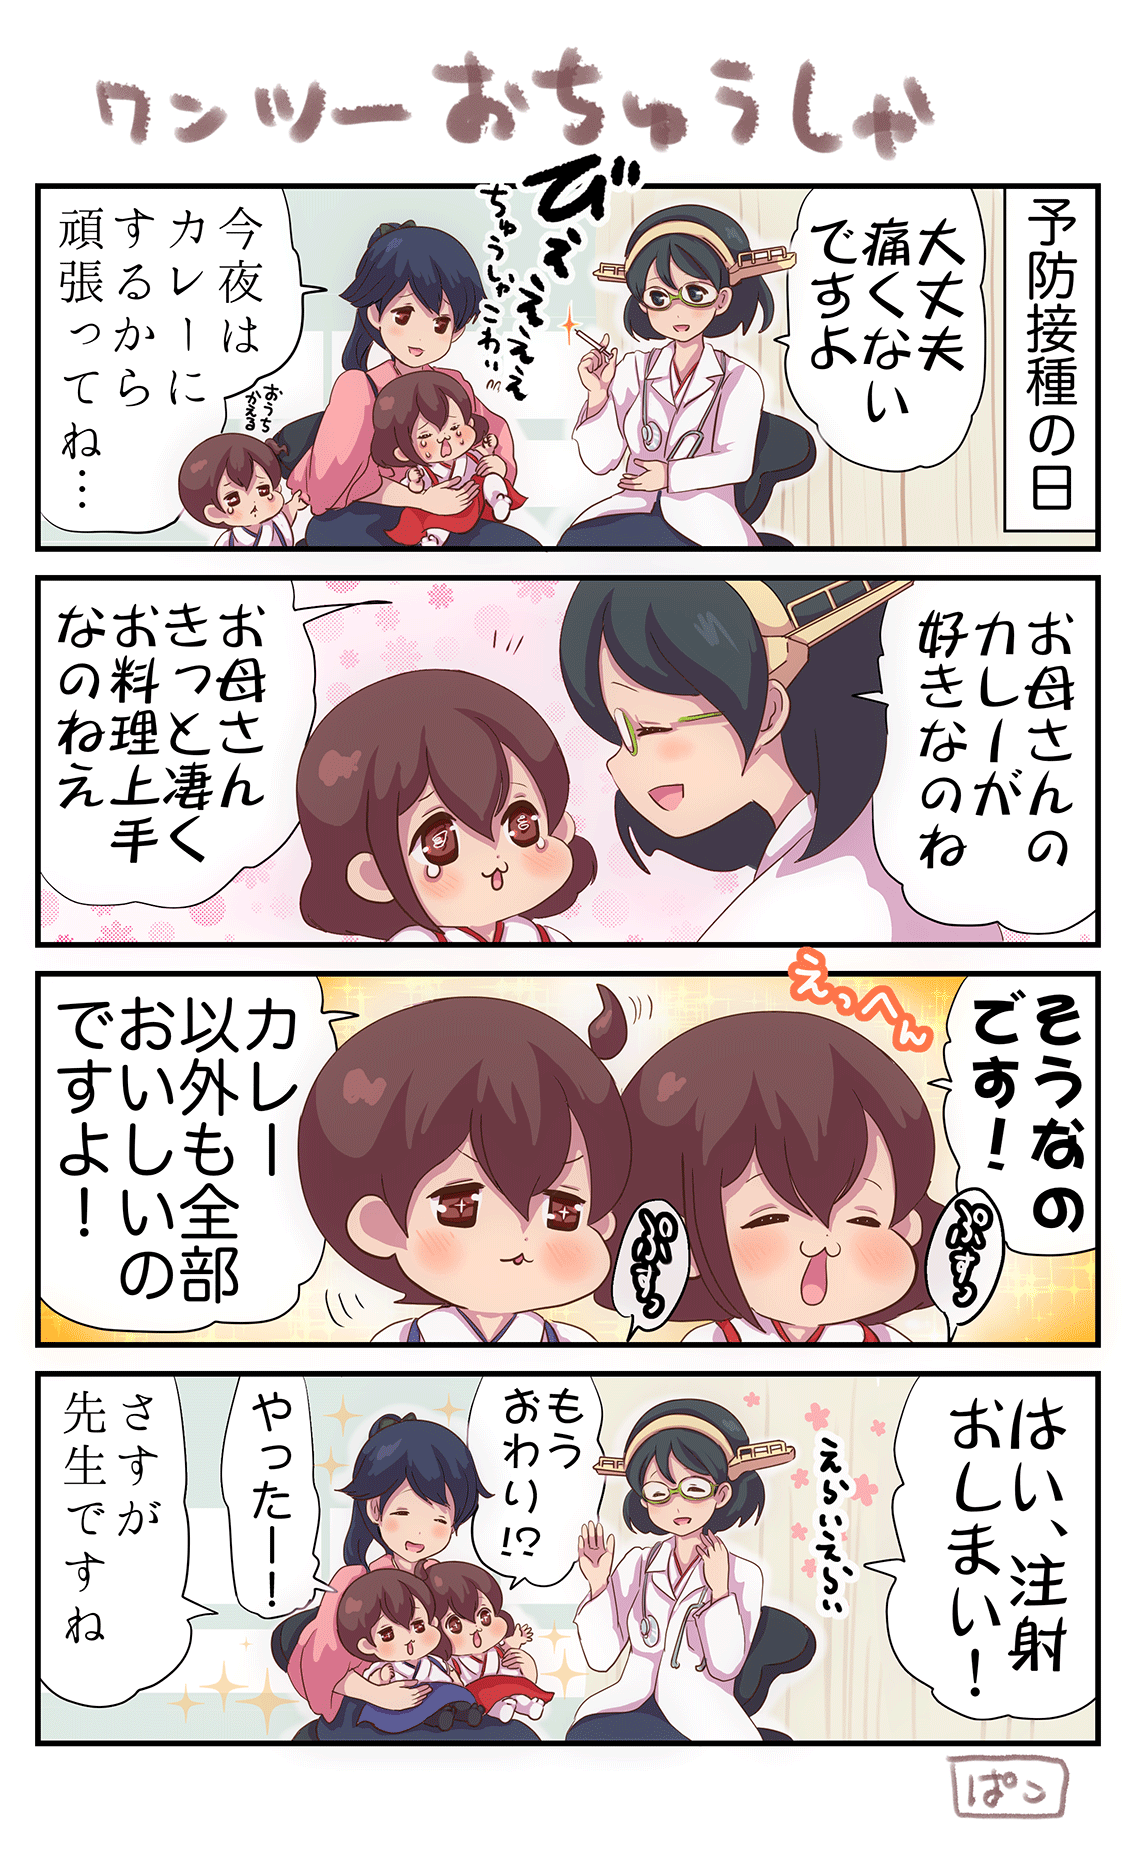 +_+ 4koma :3 akagi_(kantai_collection) black_eyes black_hair brown_eyes brown_hair carrying chair child comic crying curtains glasses headgear highres houshou_(kantai_collection) japanese_clothes kaga_(kantai_collection) kantai_collection kirishima_(kantai_collection) labcoat needle_phobia open_mouth pako_(pousse-cafe) ponytail side_ponytail sitting stethoscope syringe tears translation_request younger